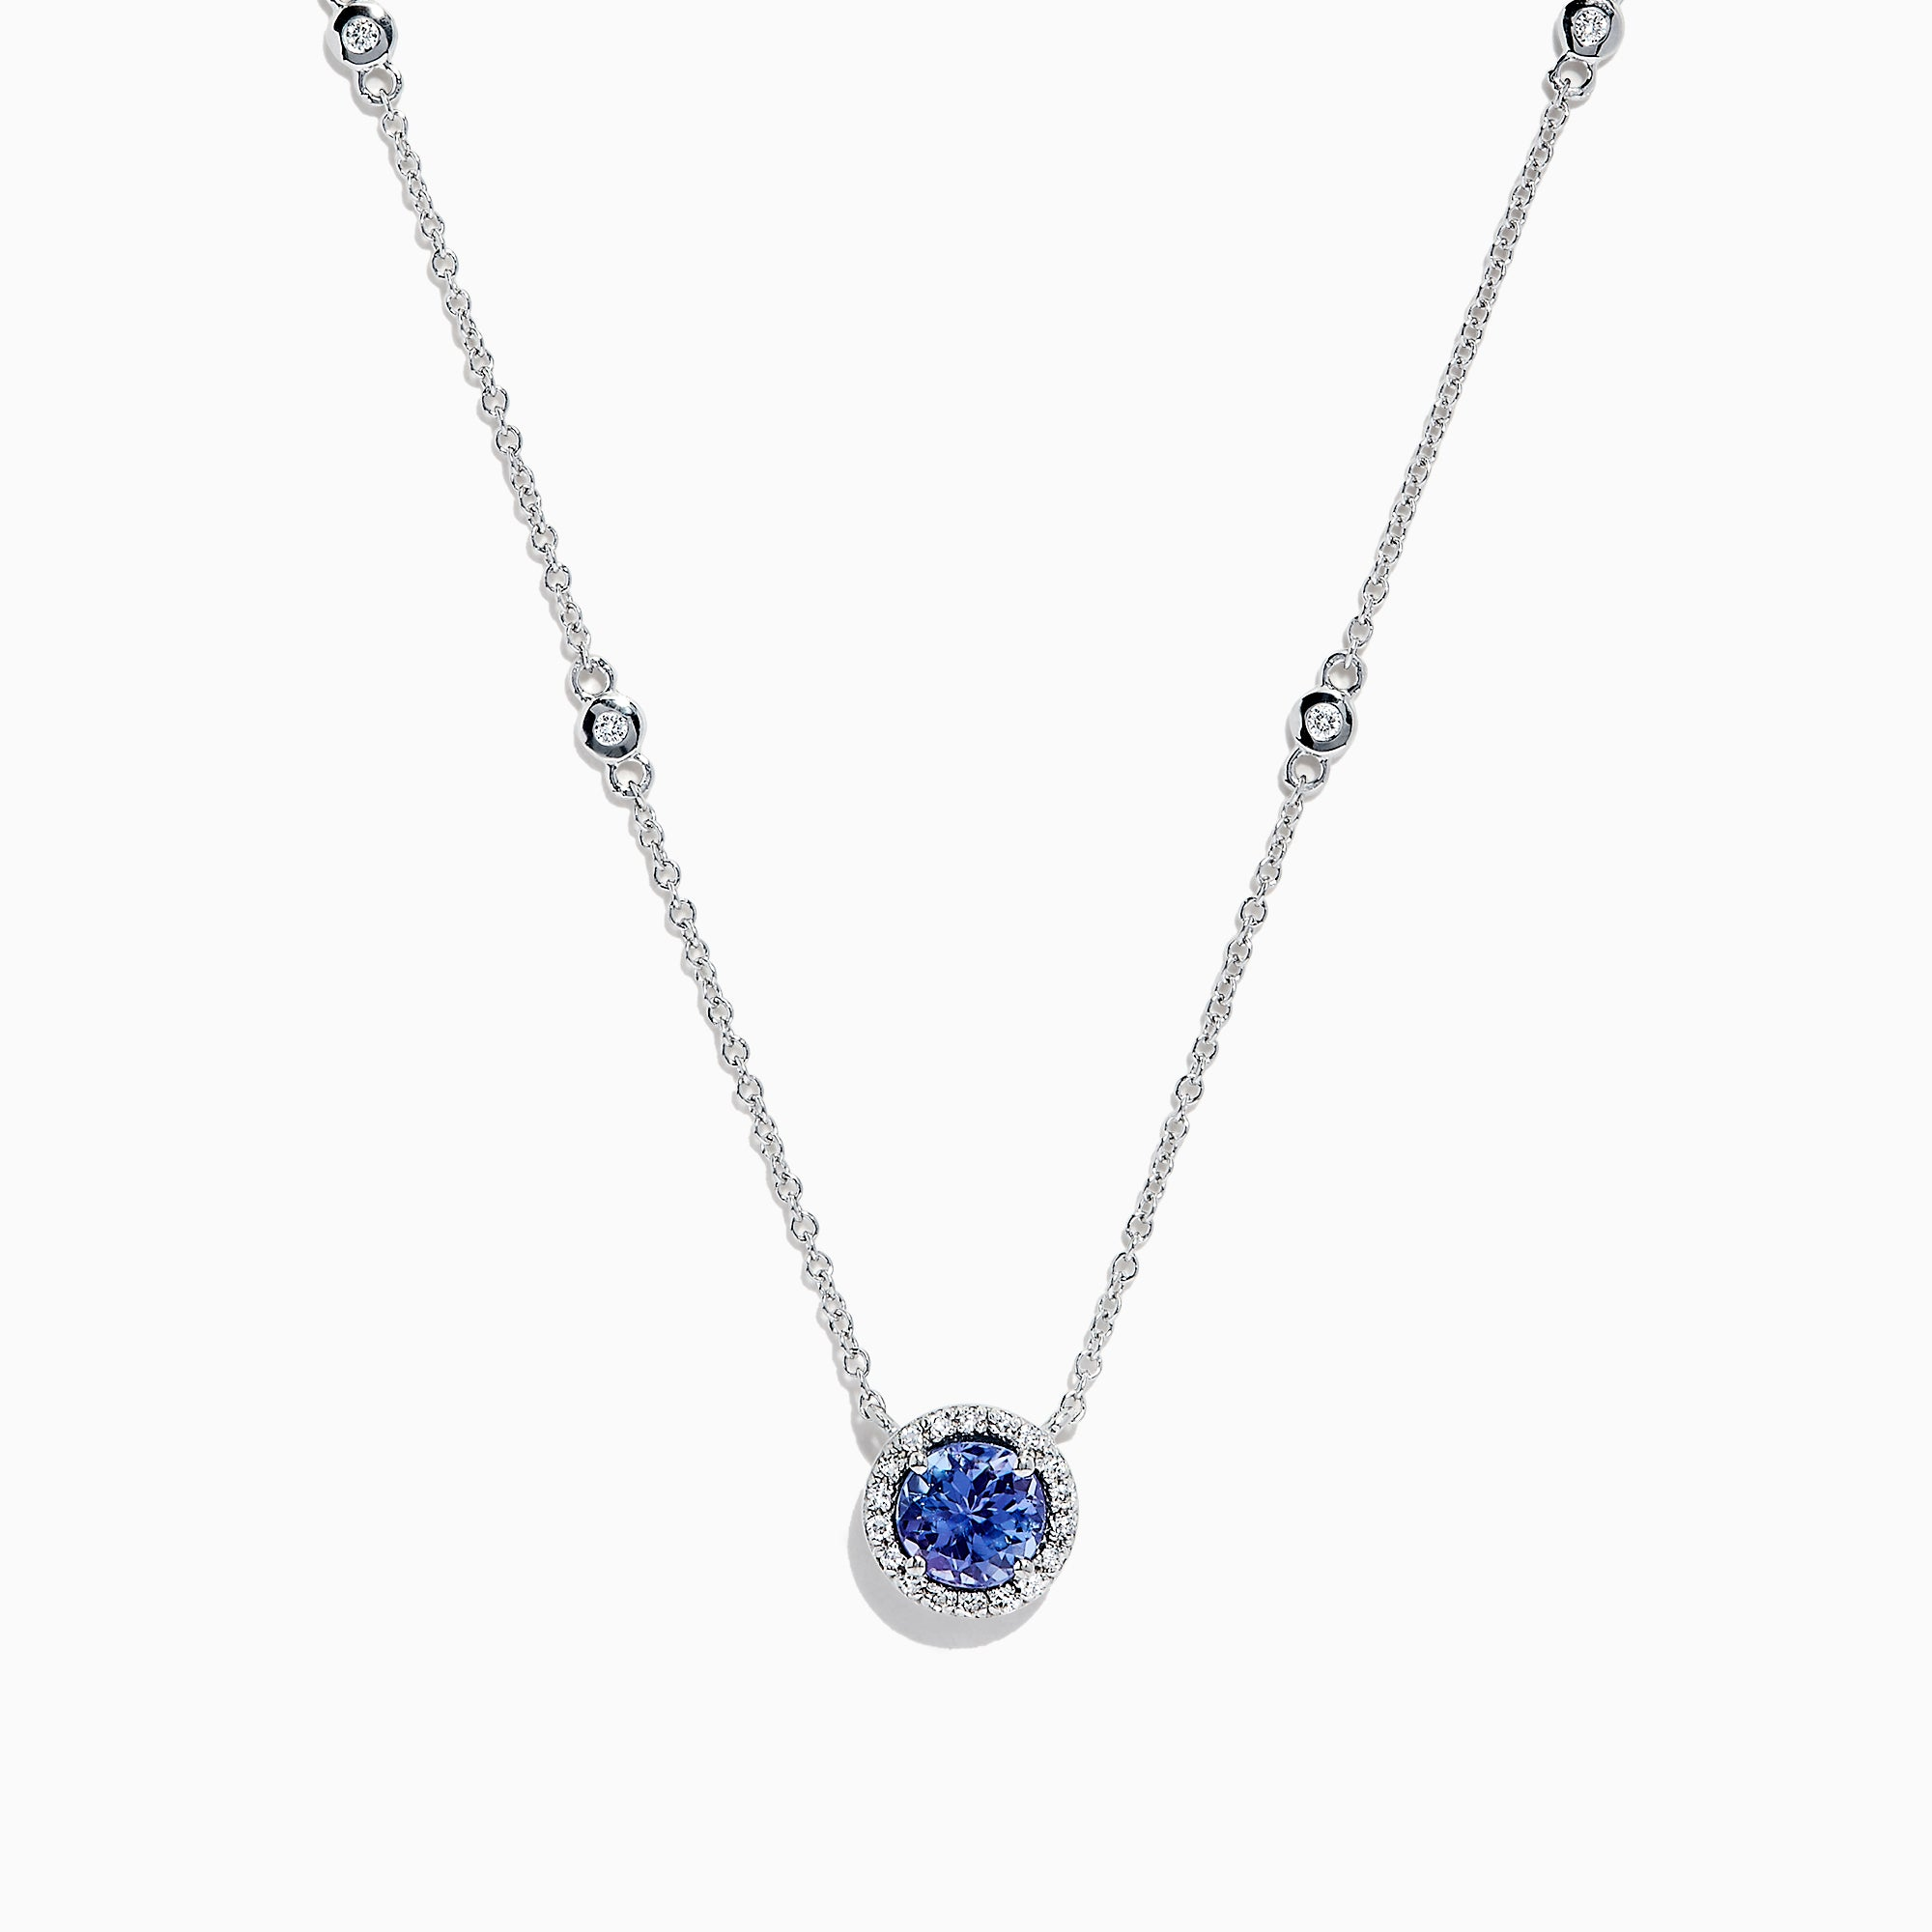 Effy Tanzanite Royale 14K White Gold Tanzanite and Diamond Necklace, 0.85 TCW